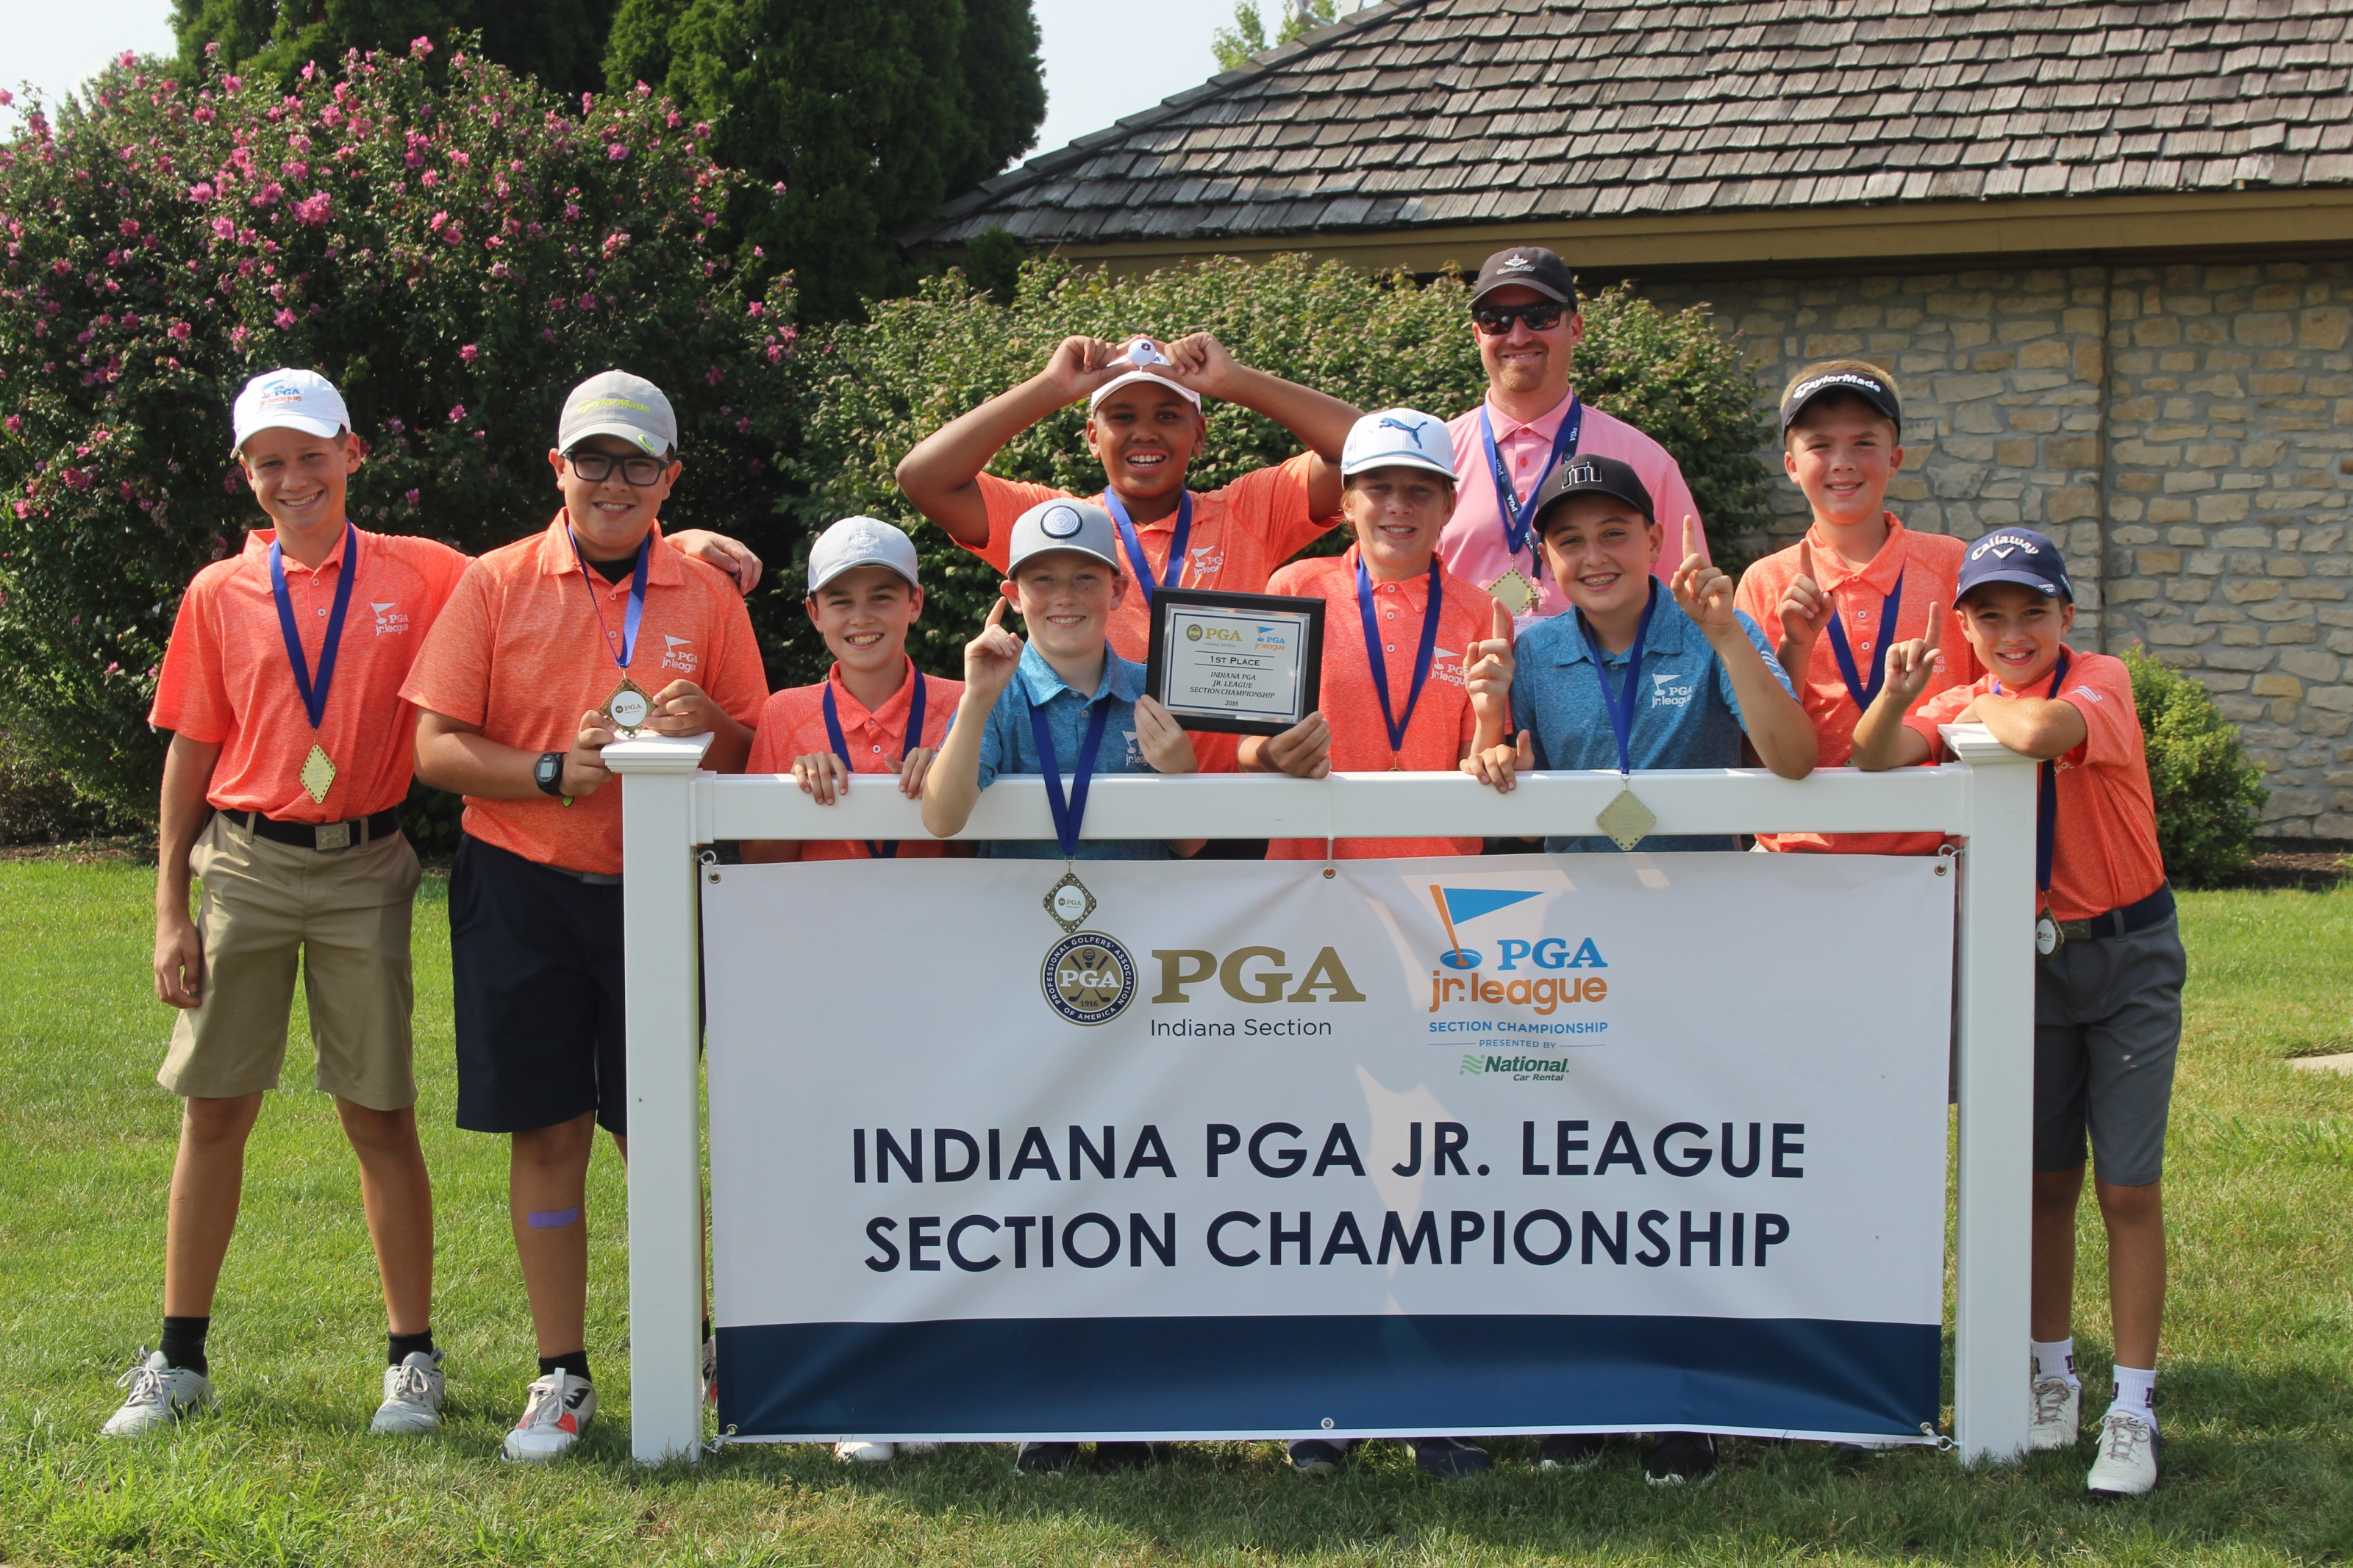 Pebble Brook Golf Club Hosting PGA Jr. League Indiana Section Championship  presented by National Car Rental August 10-11